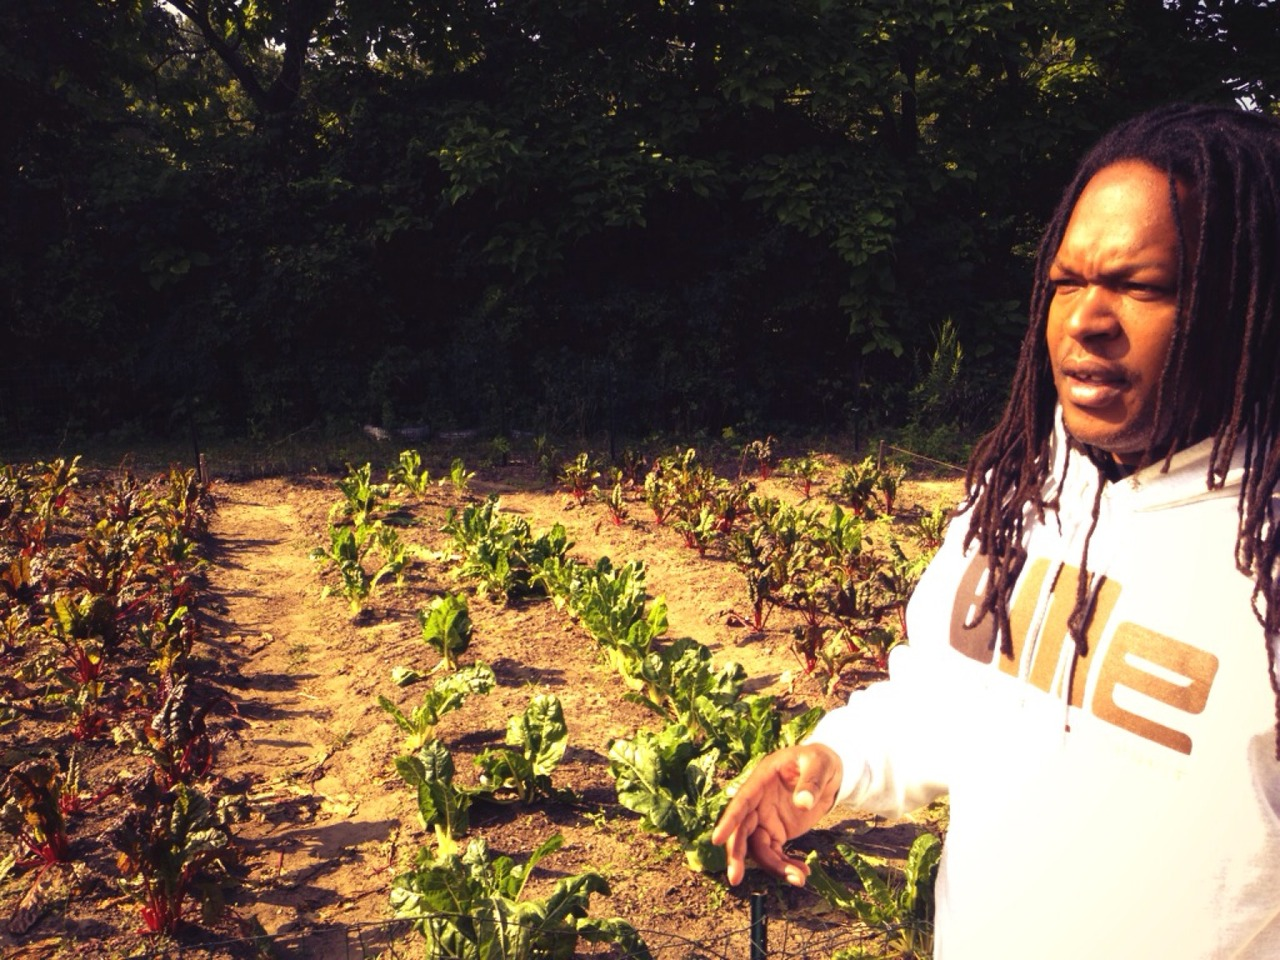 Filming for #Funded. #AnotherDetroitIsHappening #DTownFarms with Shaka at Rouge Park – View on Path.